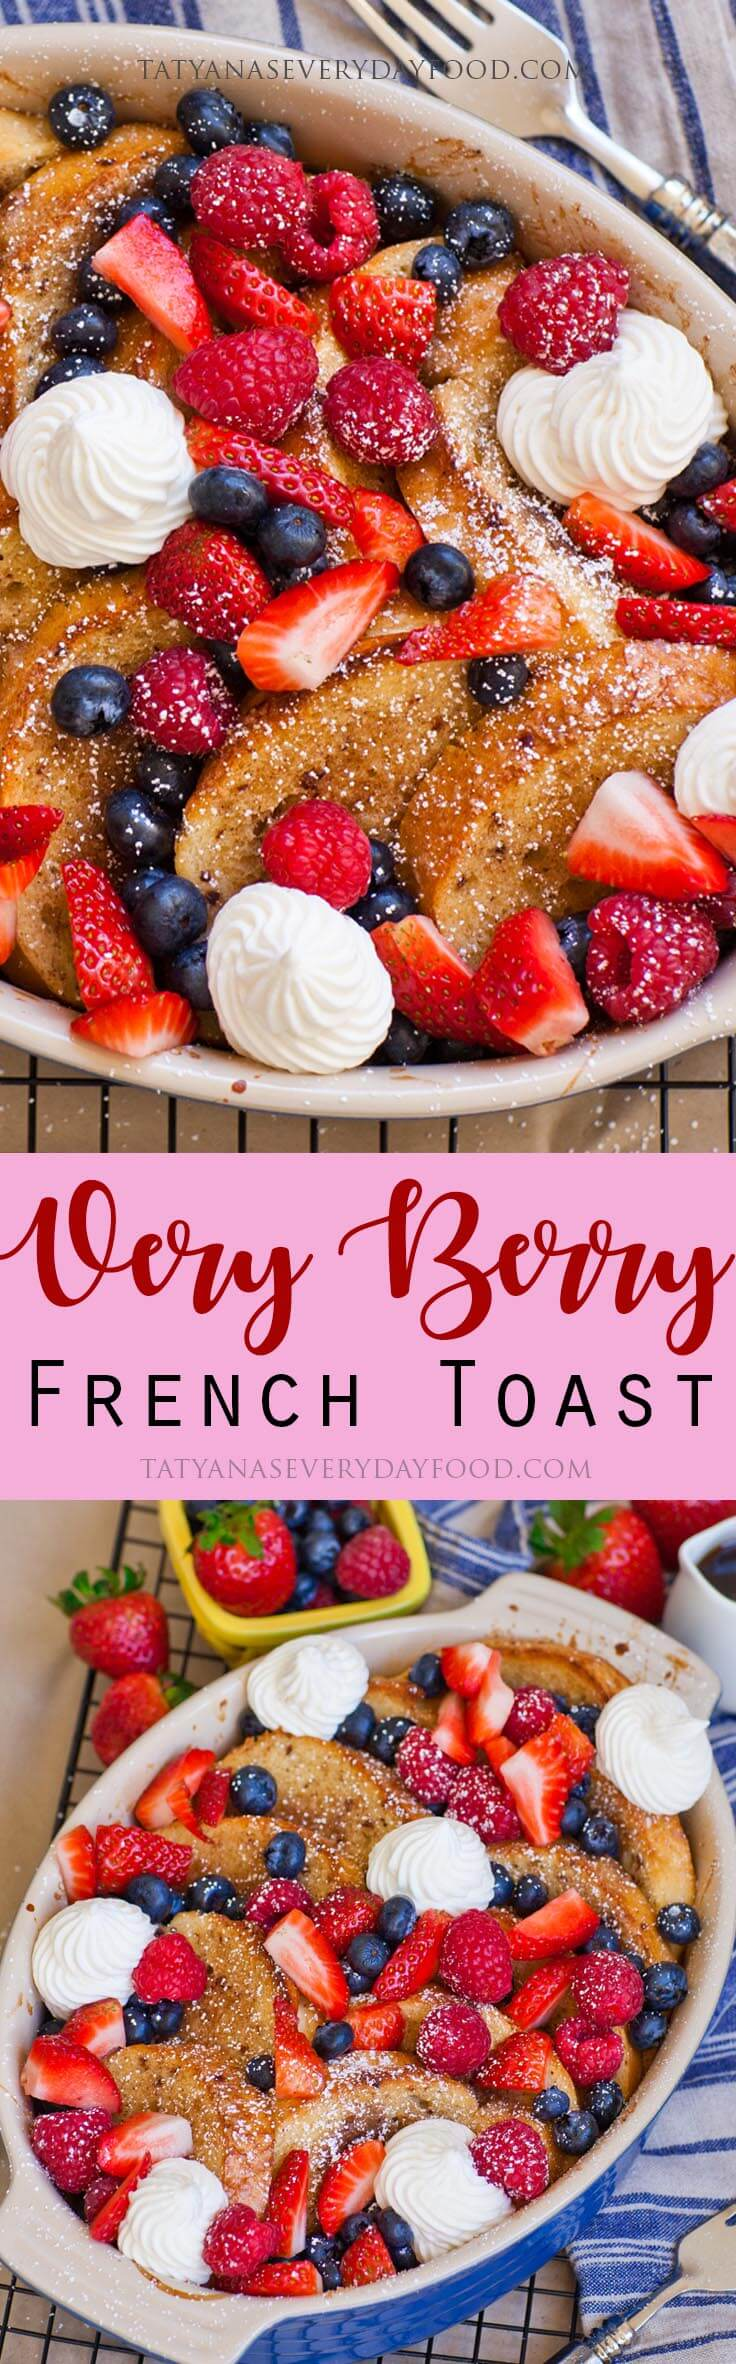 Baked French Toast with berries and maple whipped cream